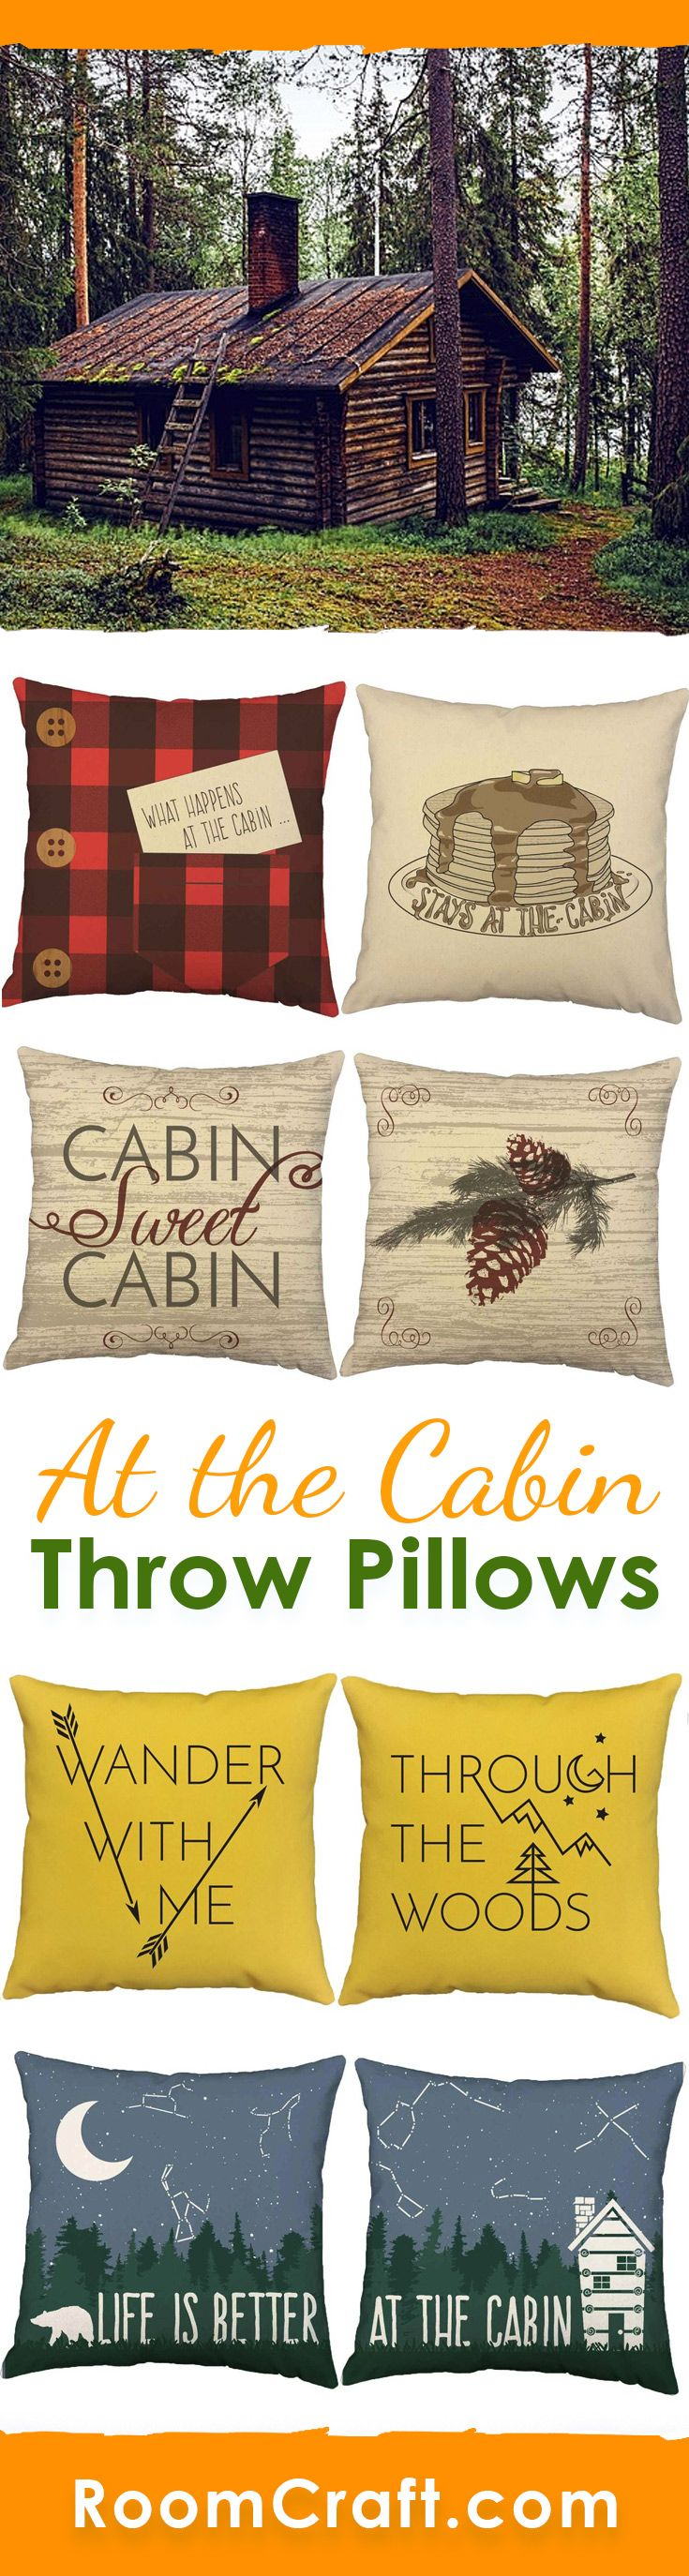 Relax by the fireplace with one of these comfy cabin throw pillows. These country living pillow cover designs are offered in multiple colors, sizes and fabrics making them perfect for your home, cabin or lodge. Our quality cabin pillow covers are made to order in the USA and feature 3 wooden buttons on the back for closure. Choose your favorite and create a truly unique pillow set. #roomcraft